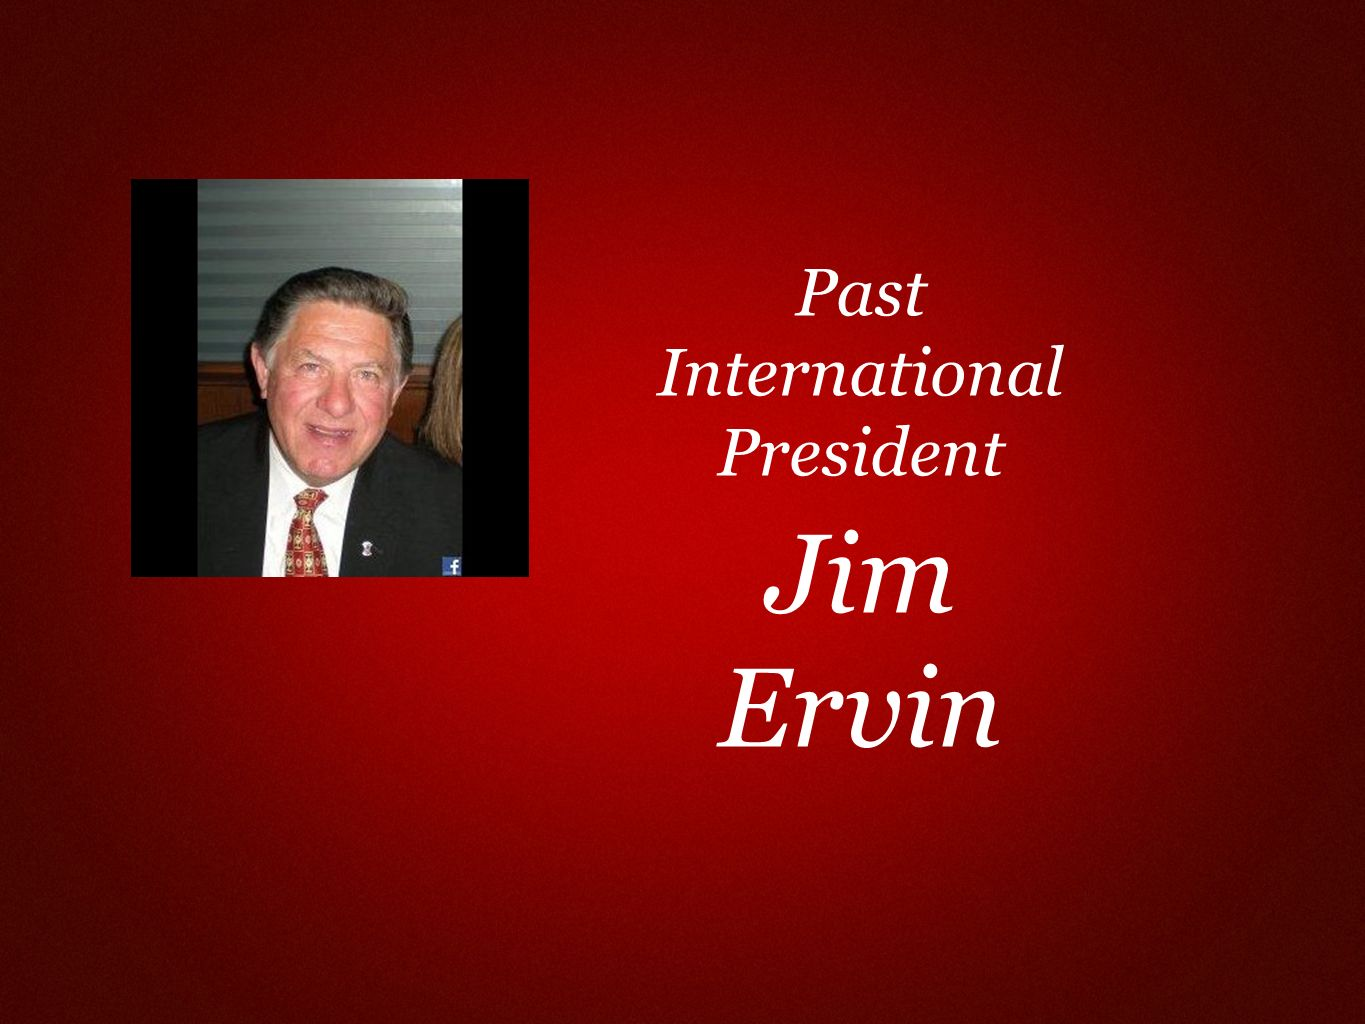 Past International President Jim Ervin